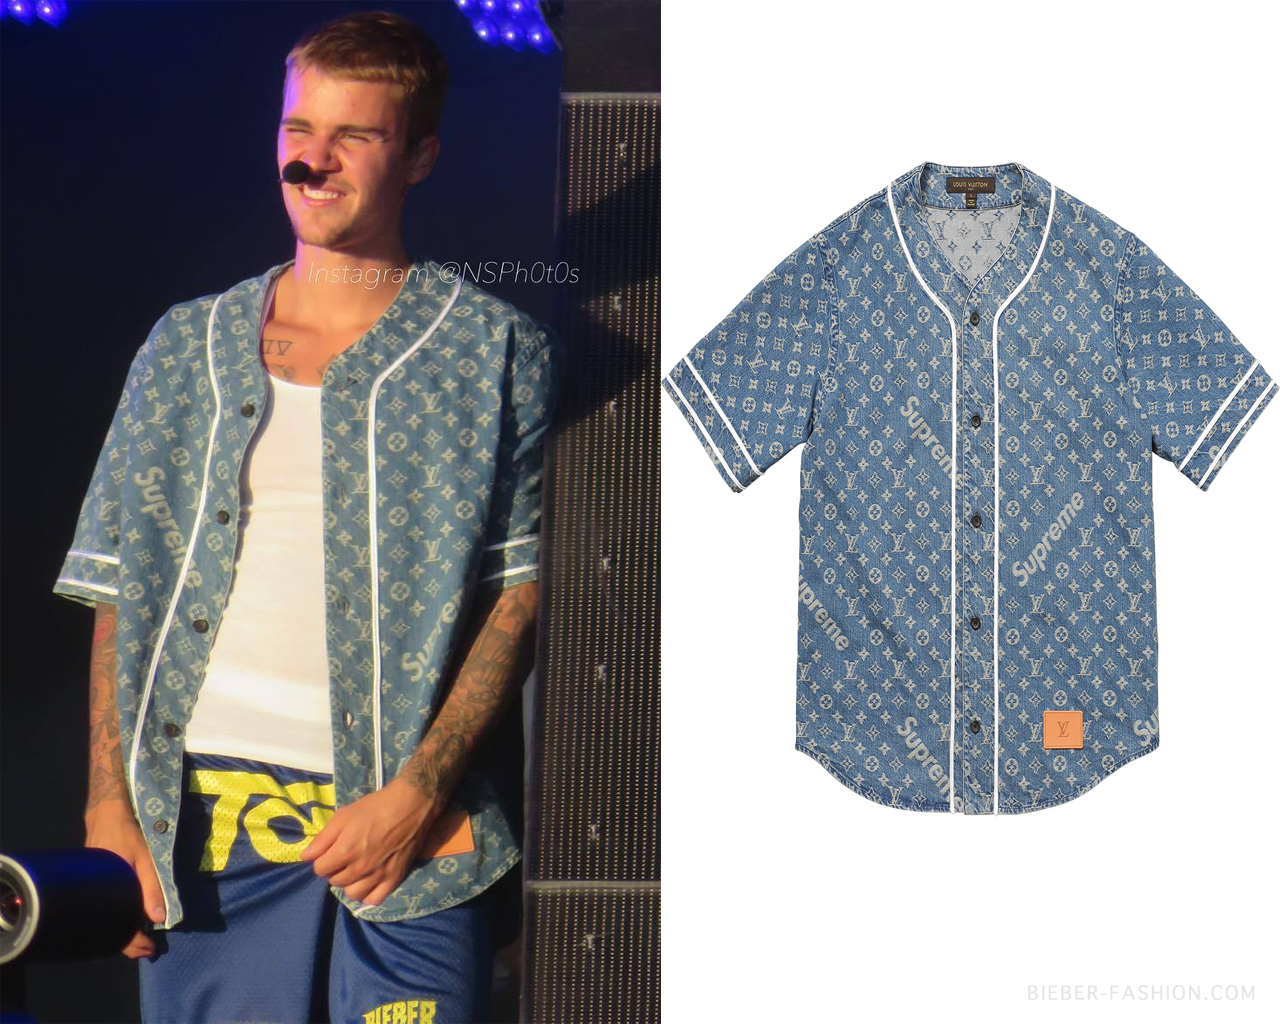 "0be15e603e bieber-fashion  "" Louis Vuitton Supreme Jacquard Denim Baseball Jersey in  Blue -  790.00 Available at Louis Vuitton Pop-Up Stores """